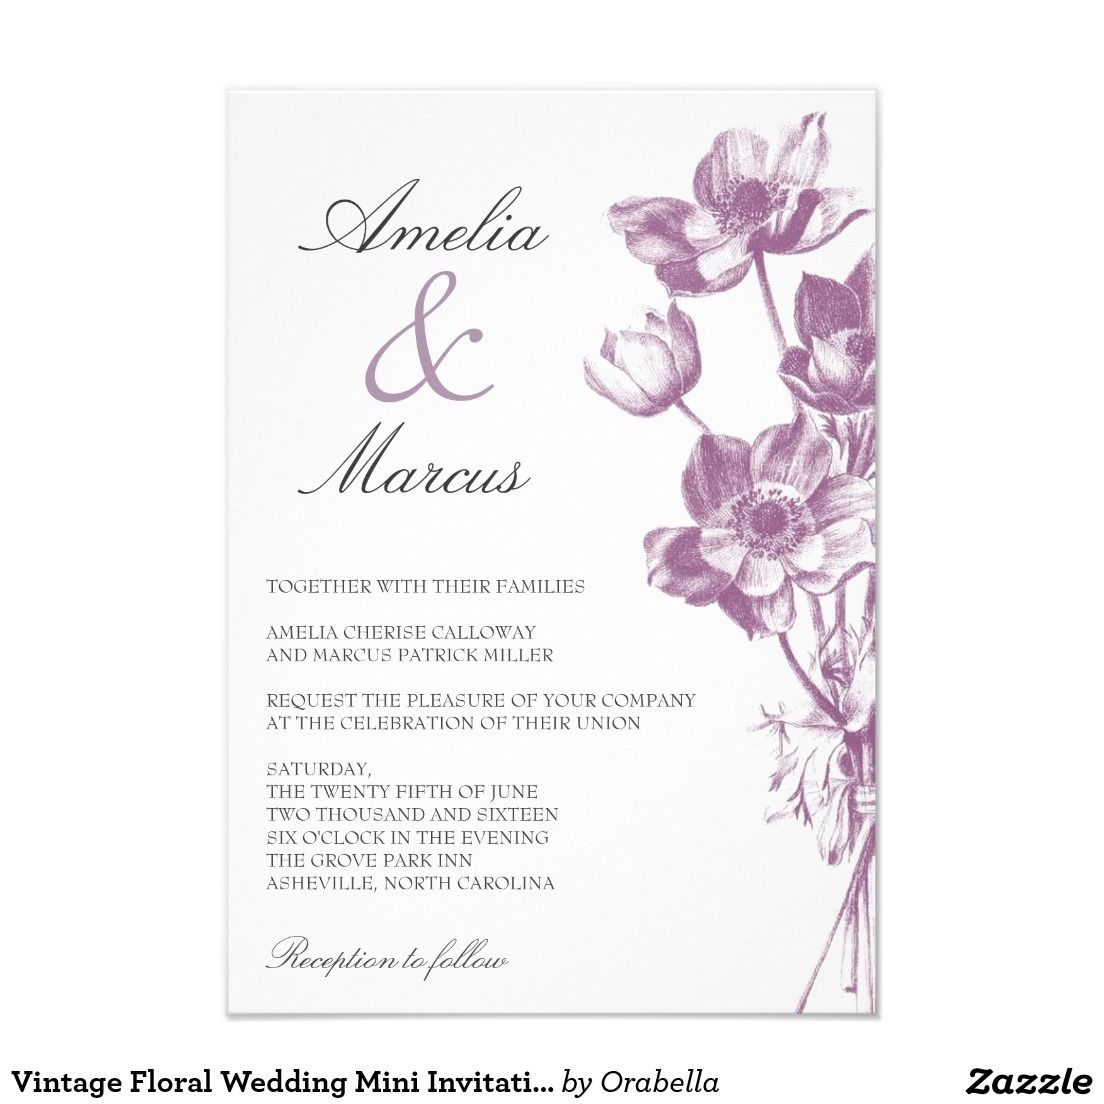 Vintage floral wedding mini invitation white floral wedding vintage floral wedding mini invitation white stopboris Gallery